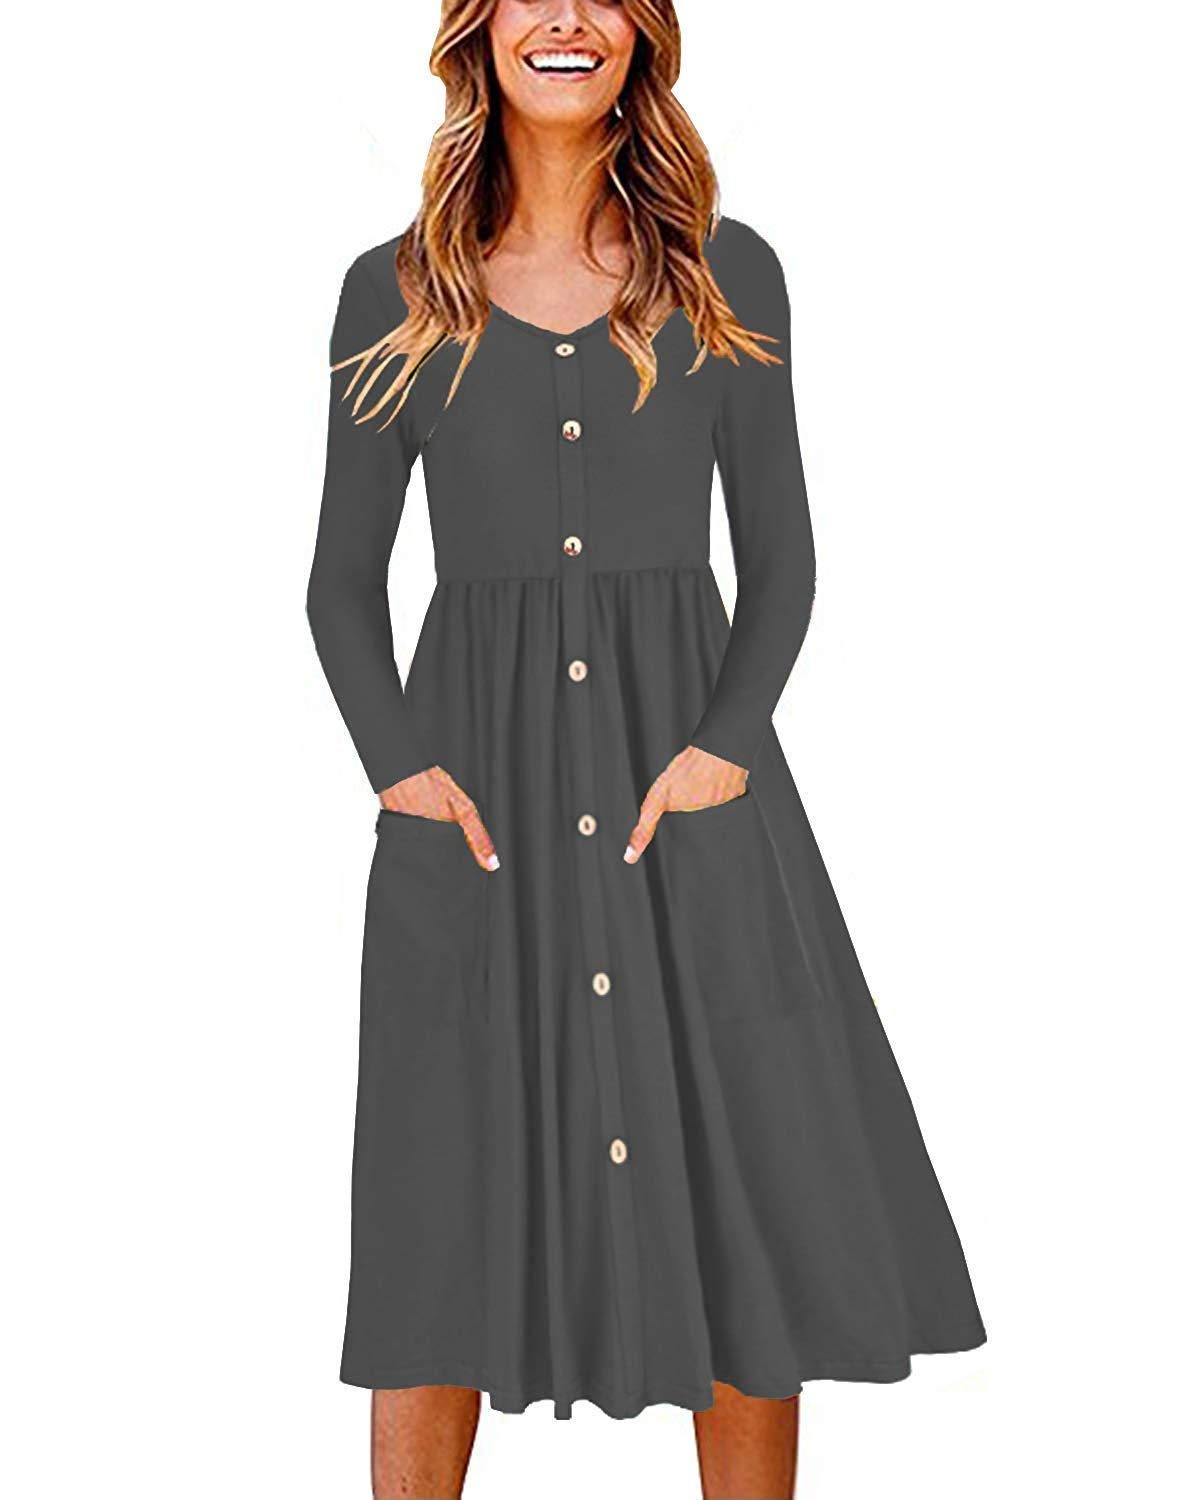 LAMISSCHE Womens Summer Casual Short Sleeve V Neck Button Down A-line Dress with Pockets(Dark Grey-Long Sleeve,S) by LAMISSCHE